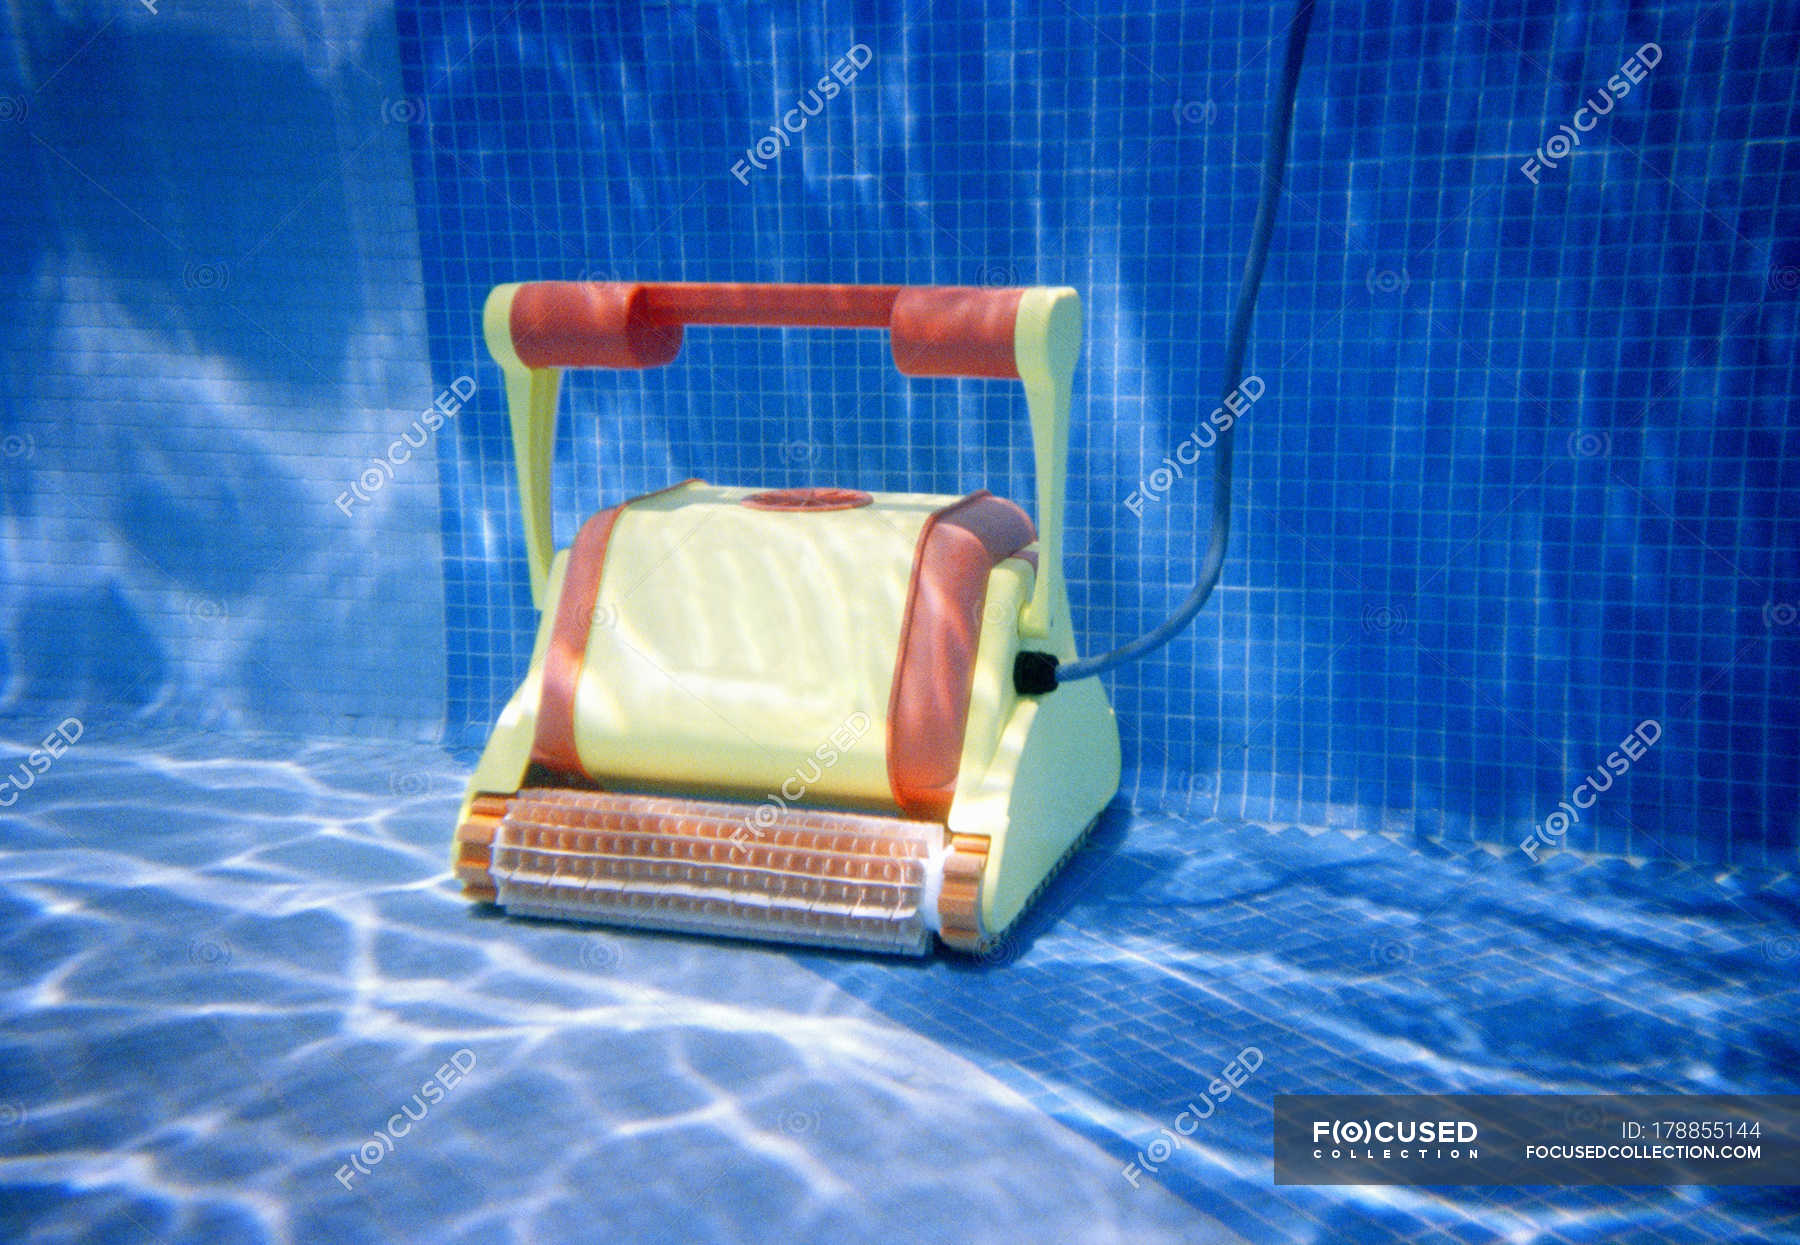 Pool Cleaner Underwater In Swimming